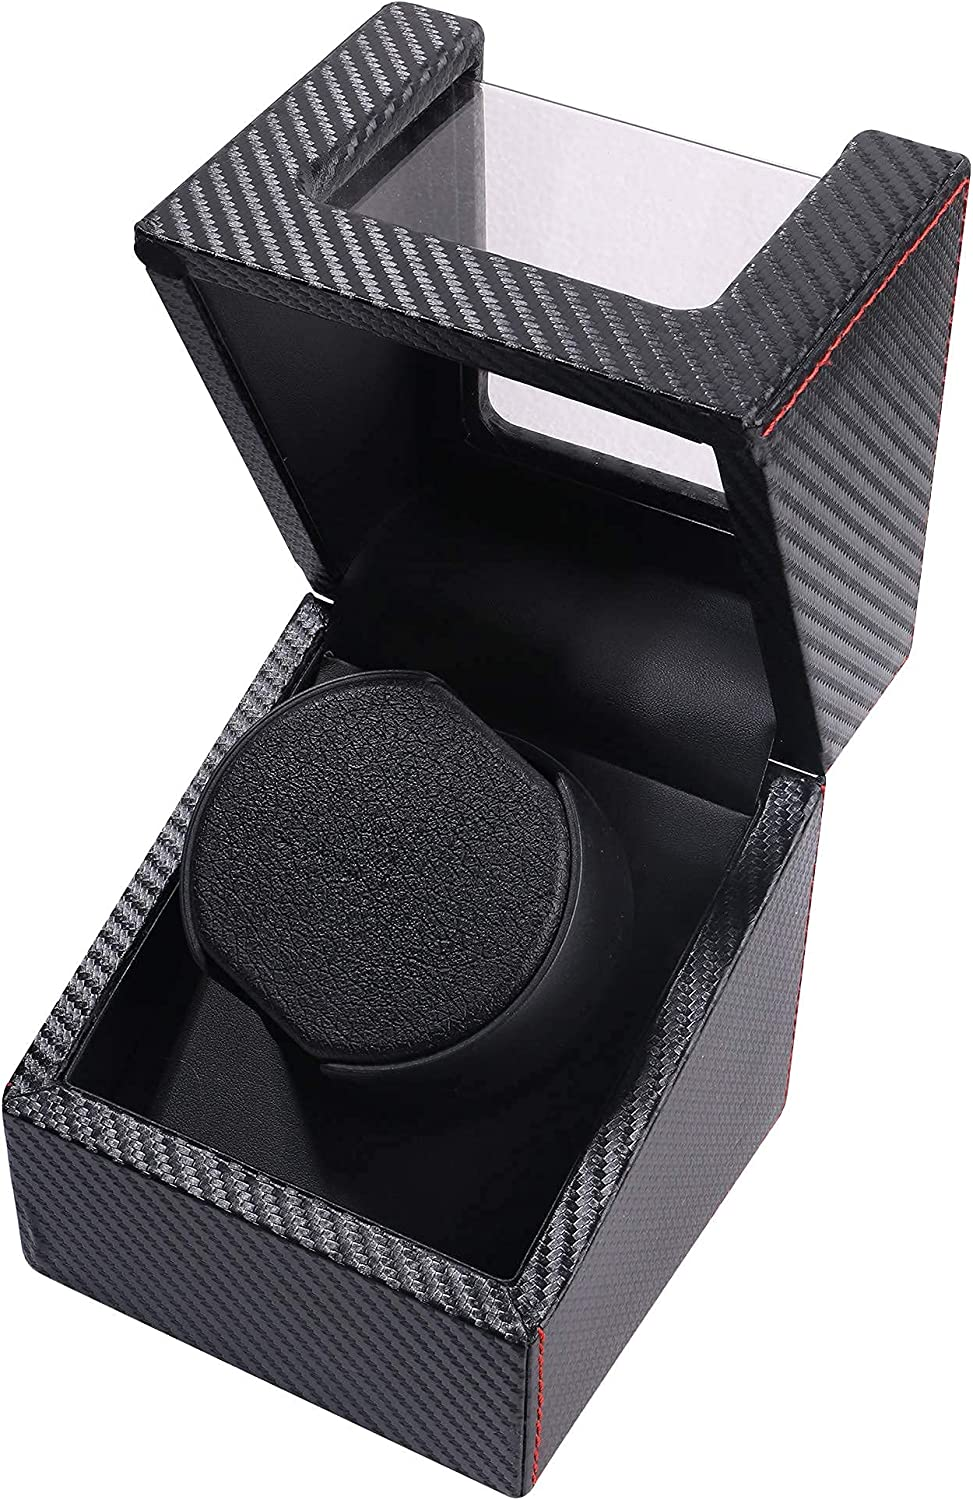 Siremig Clearance SALE! Limited time! 2021 new Automatic Watch Winder in Car Single Black